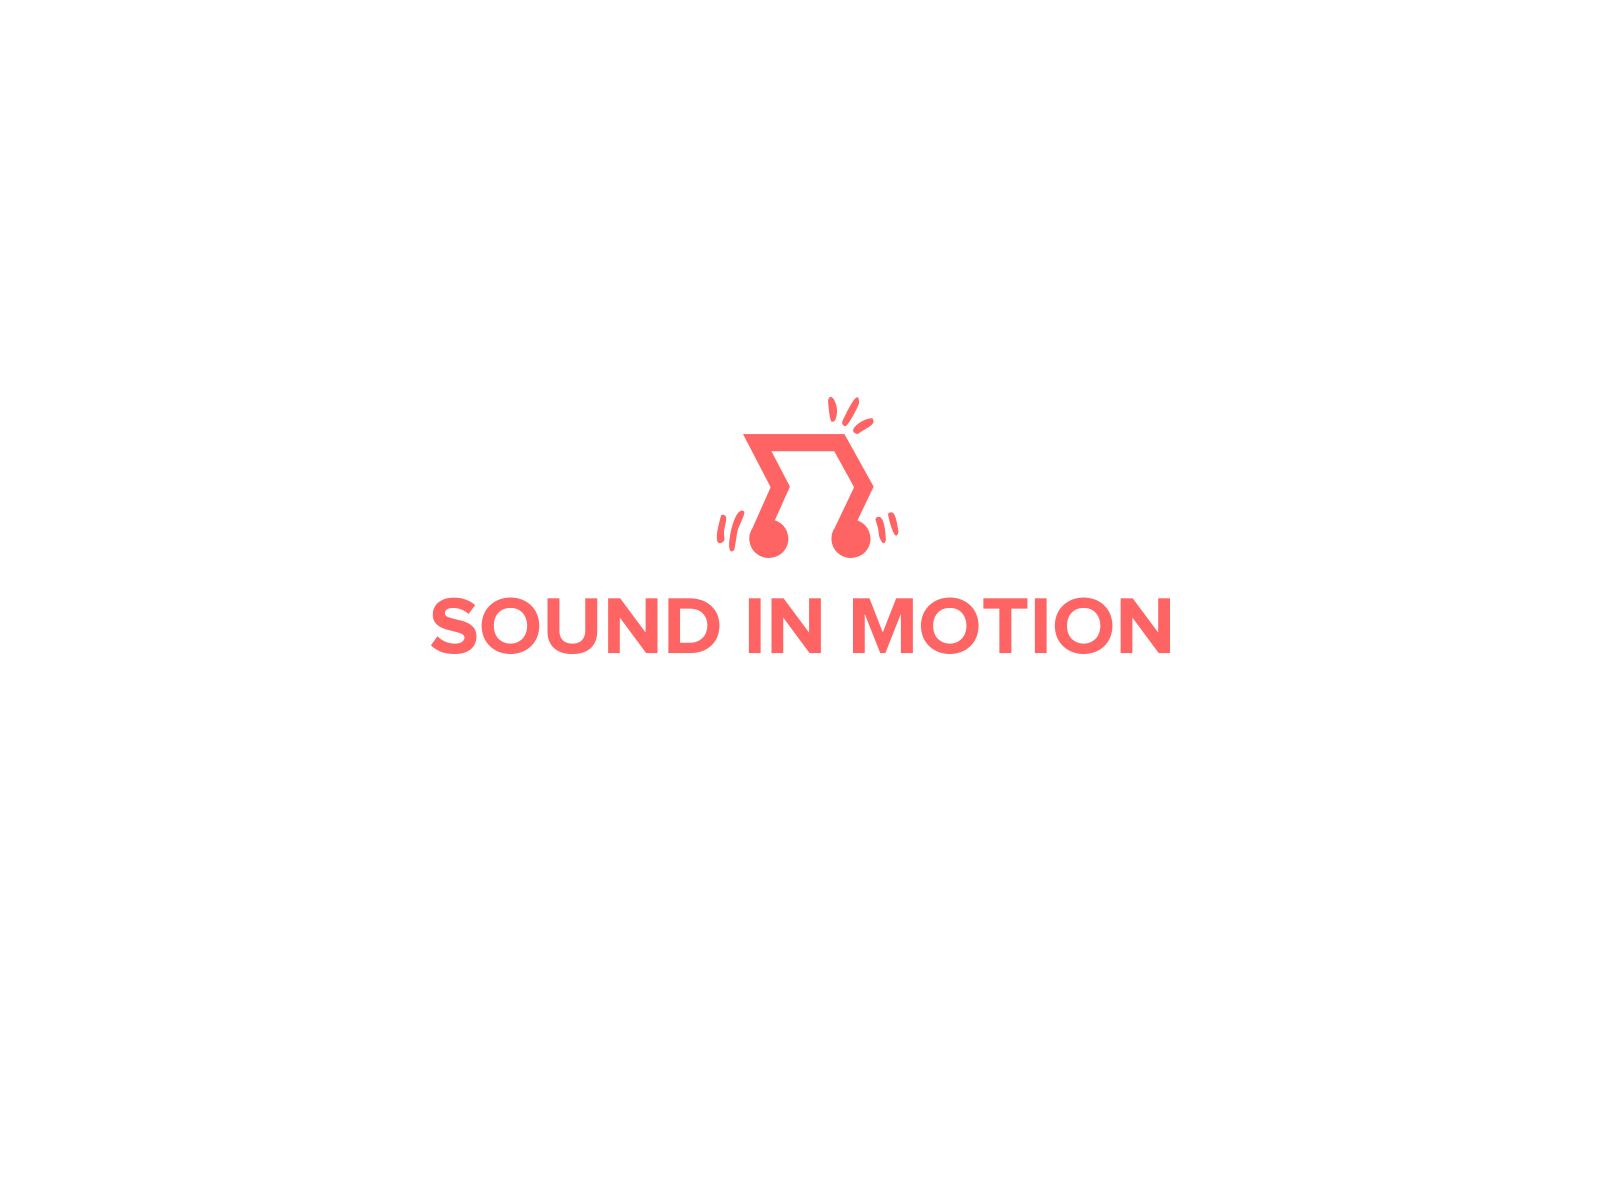 Sound in Motion Logotype / concept